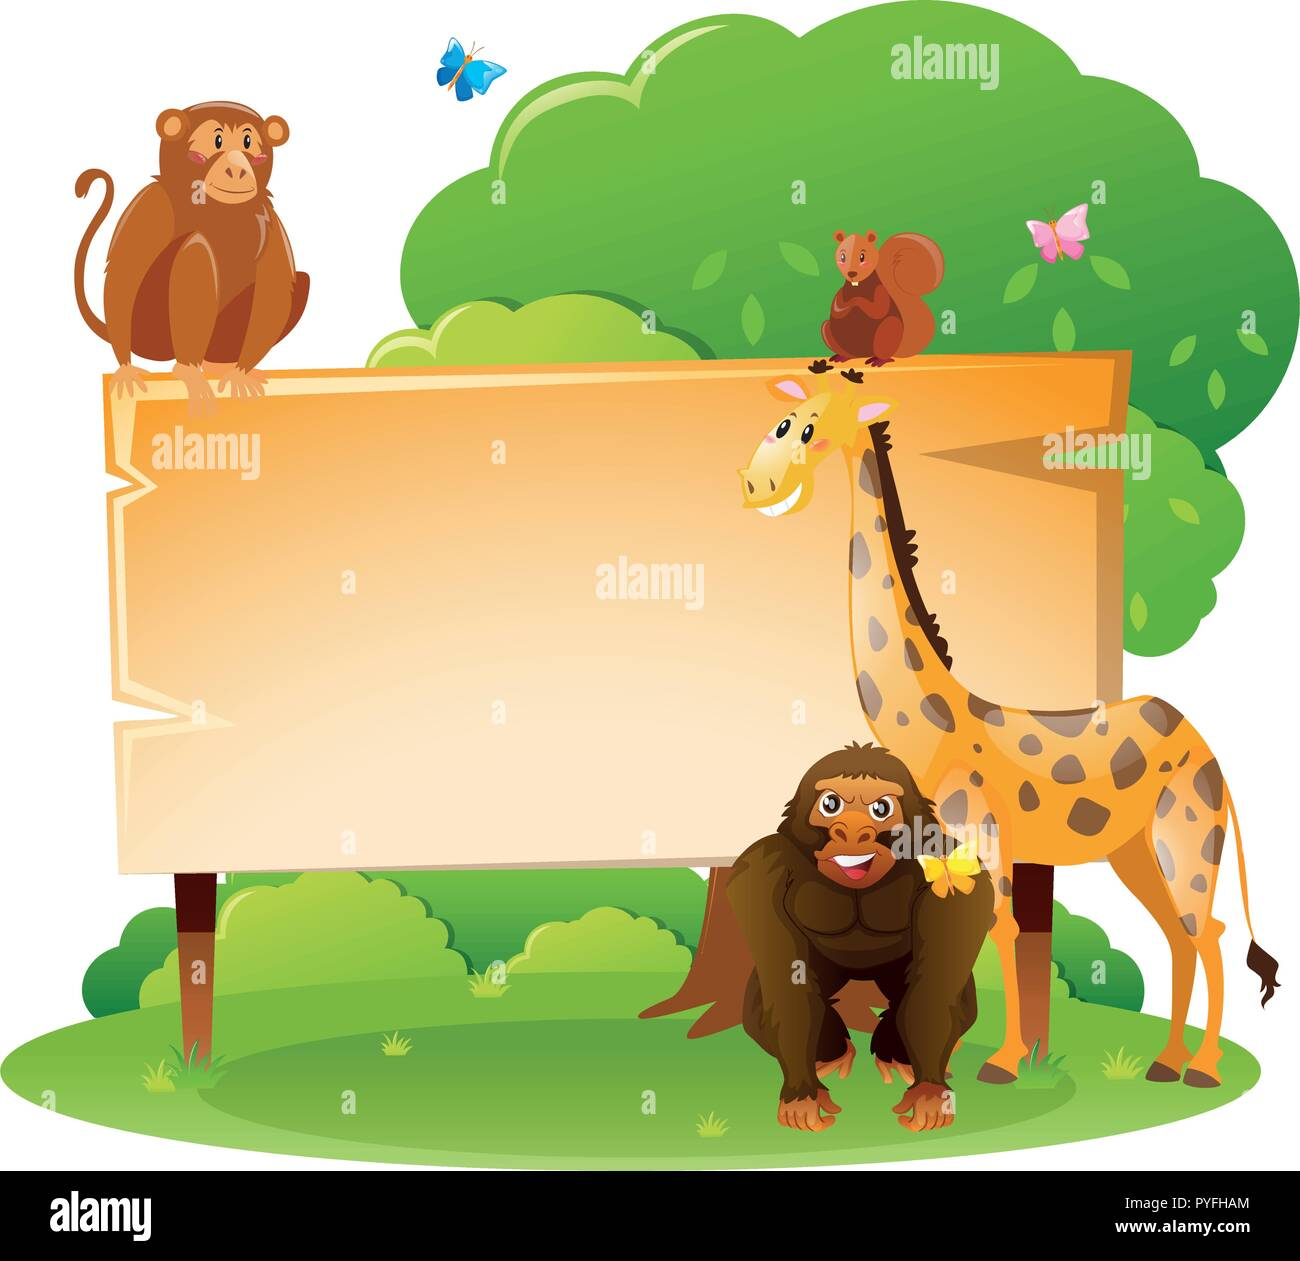 wooden sign template with wild animals illustration stock vector art